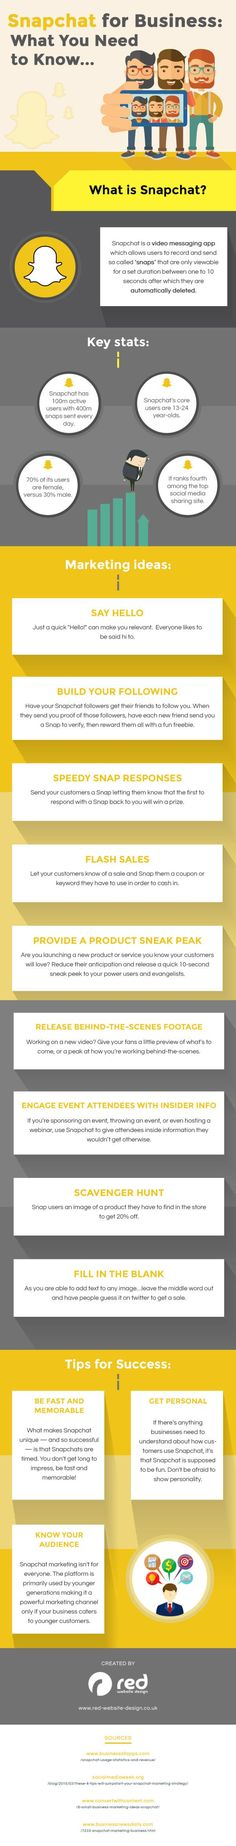 snapchat marketing for business and tips on ways to use it!